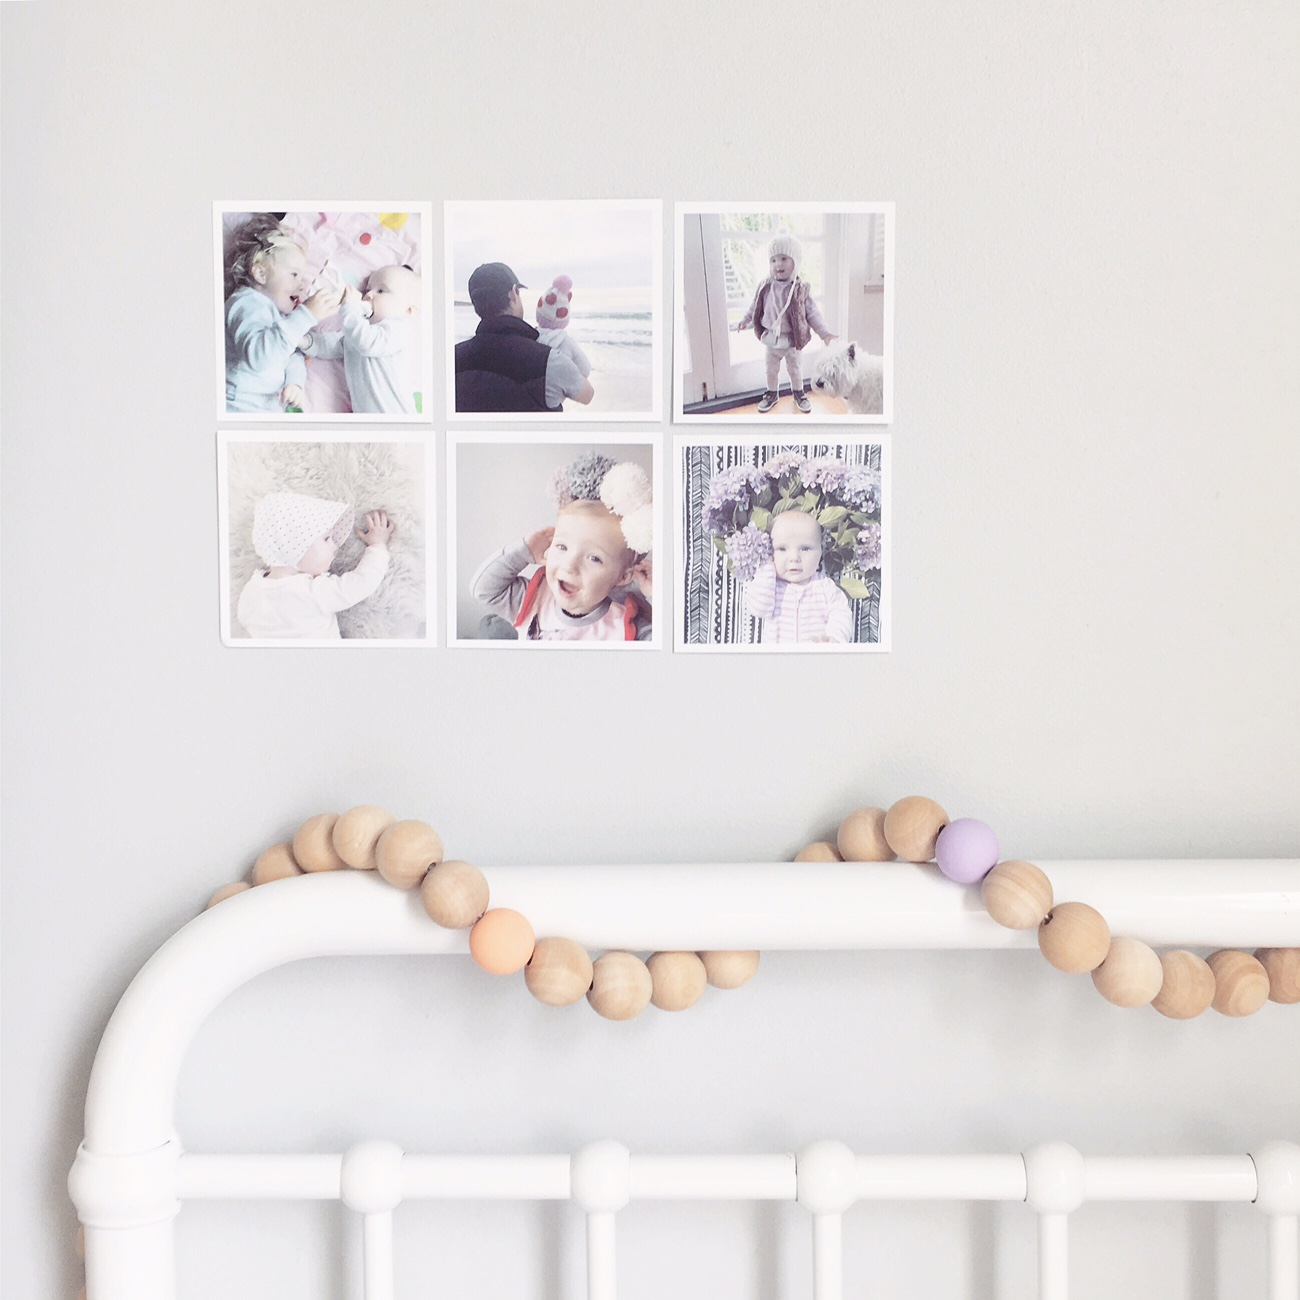 Photo Prints by Pocket Prints App. Wooden Clay Bead Garland by Projekt Frankie.